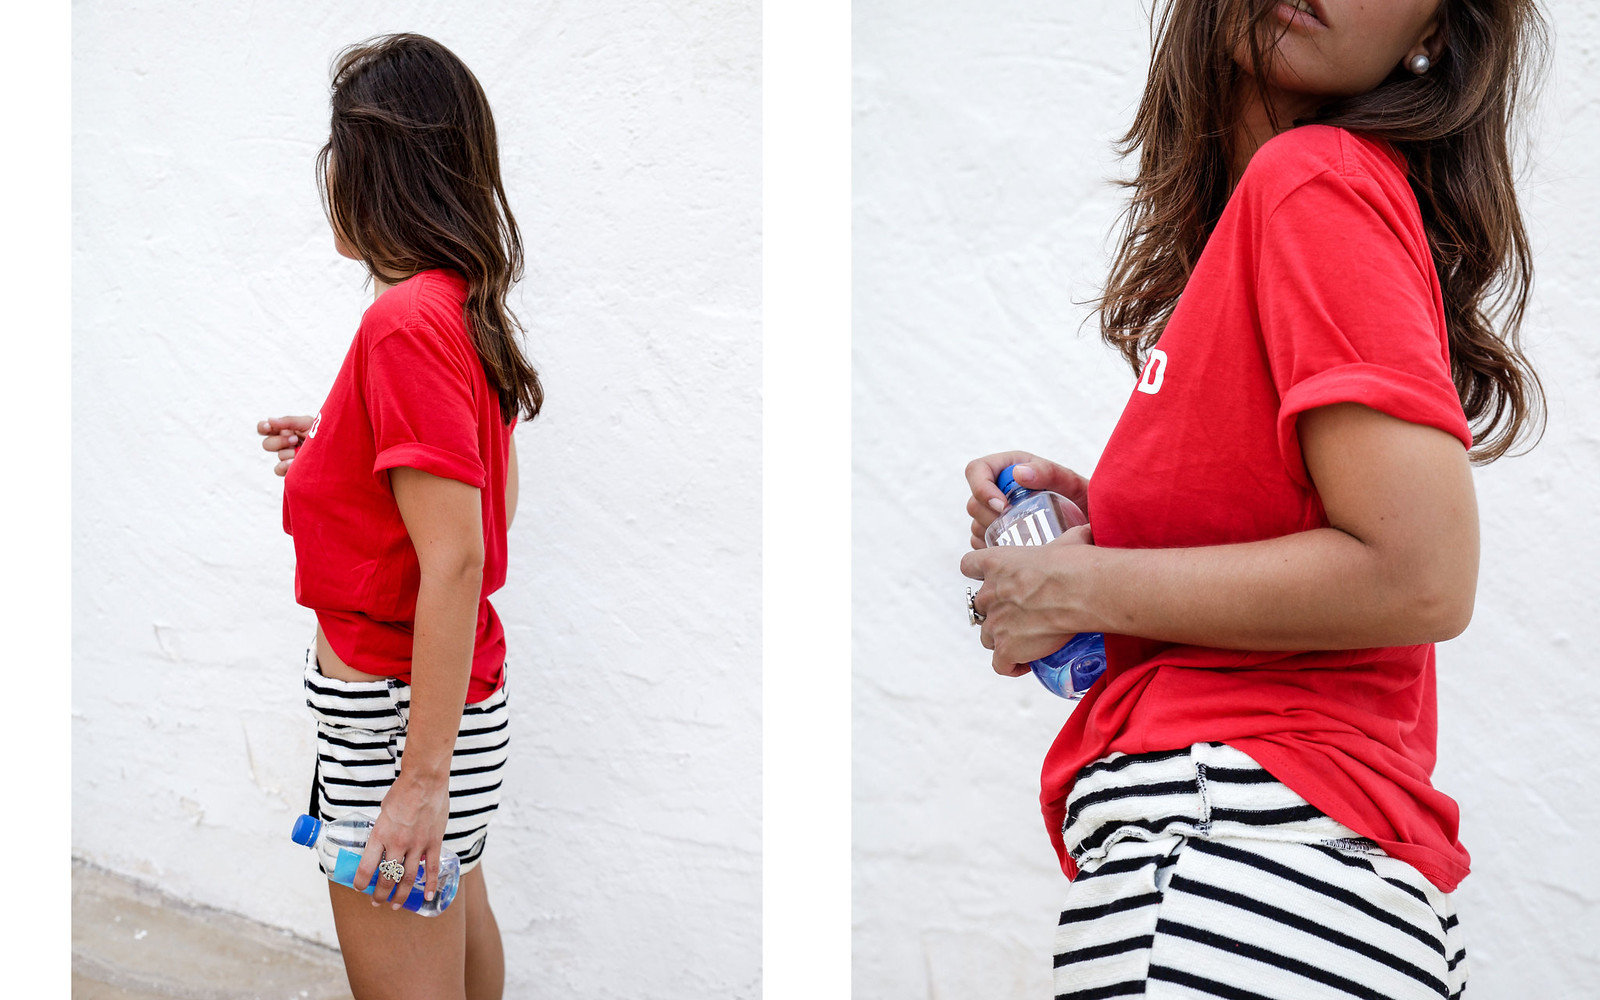 03_shorts_rayas_unexpected_shirt_stripes_shorts_pieces_unexpected_shirt_morinko_red_tshirt_style_theguestgirl_pieces_ootd_influencer_barcelona_verano_fiji_water.